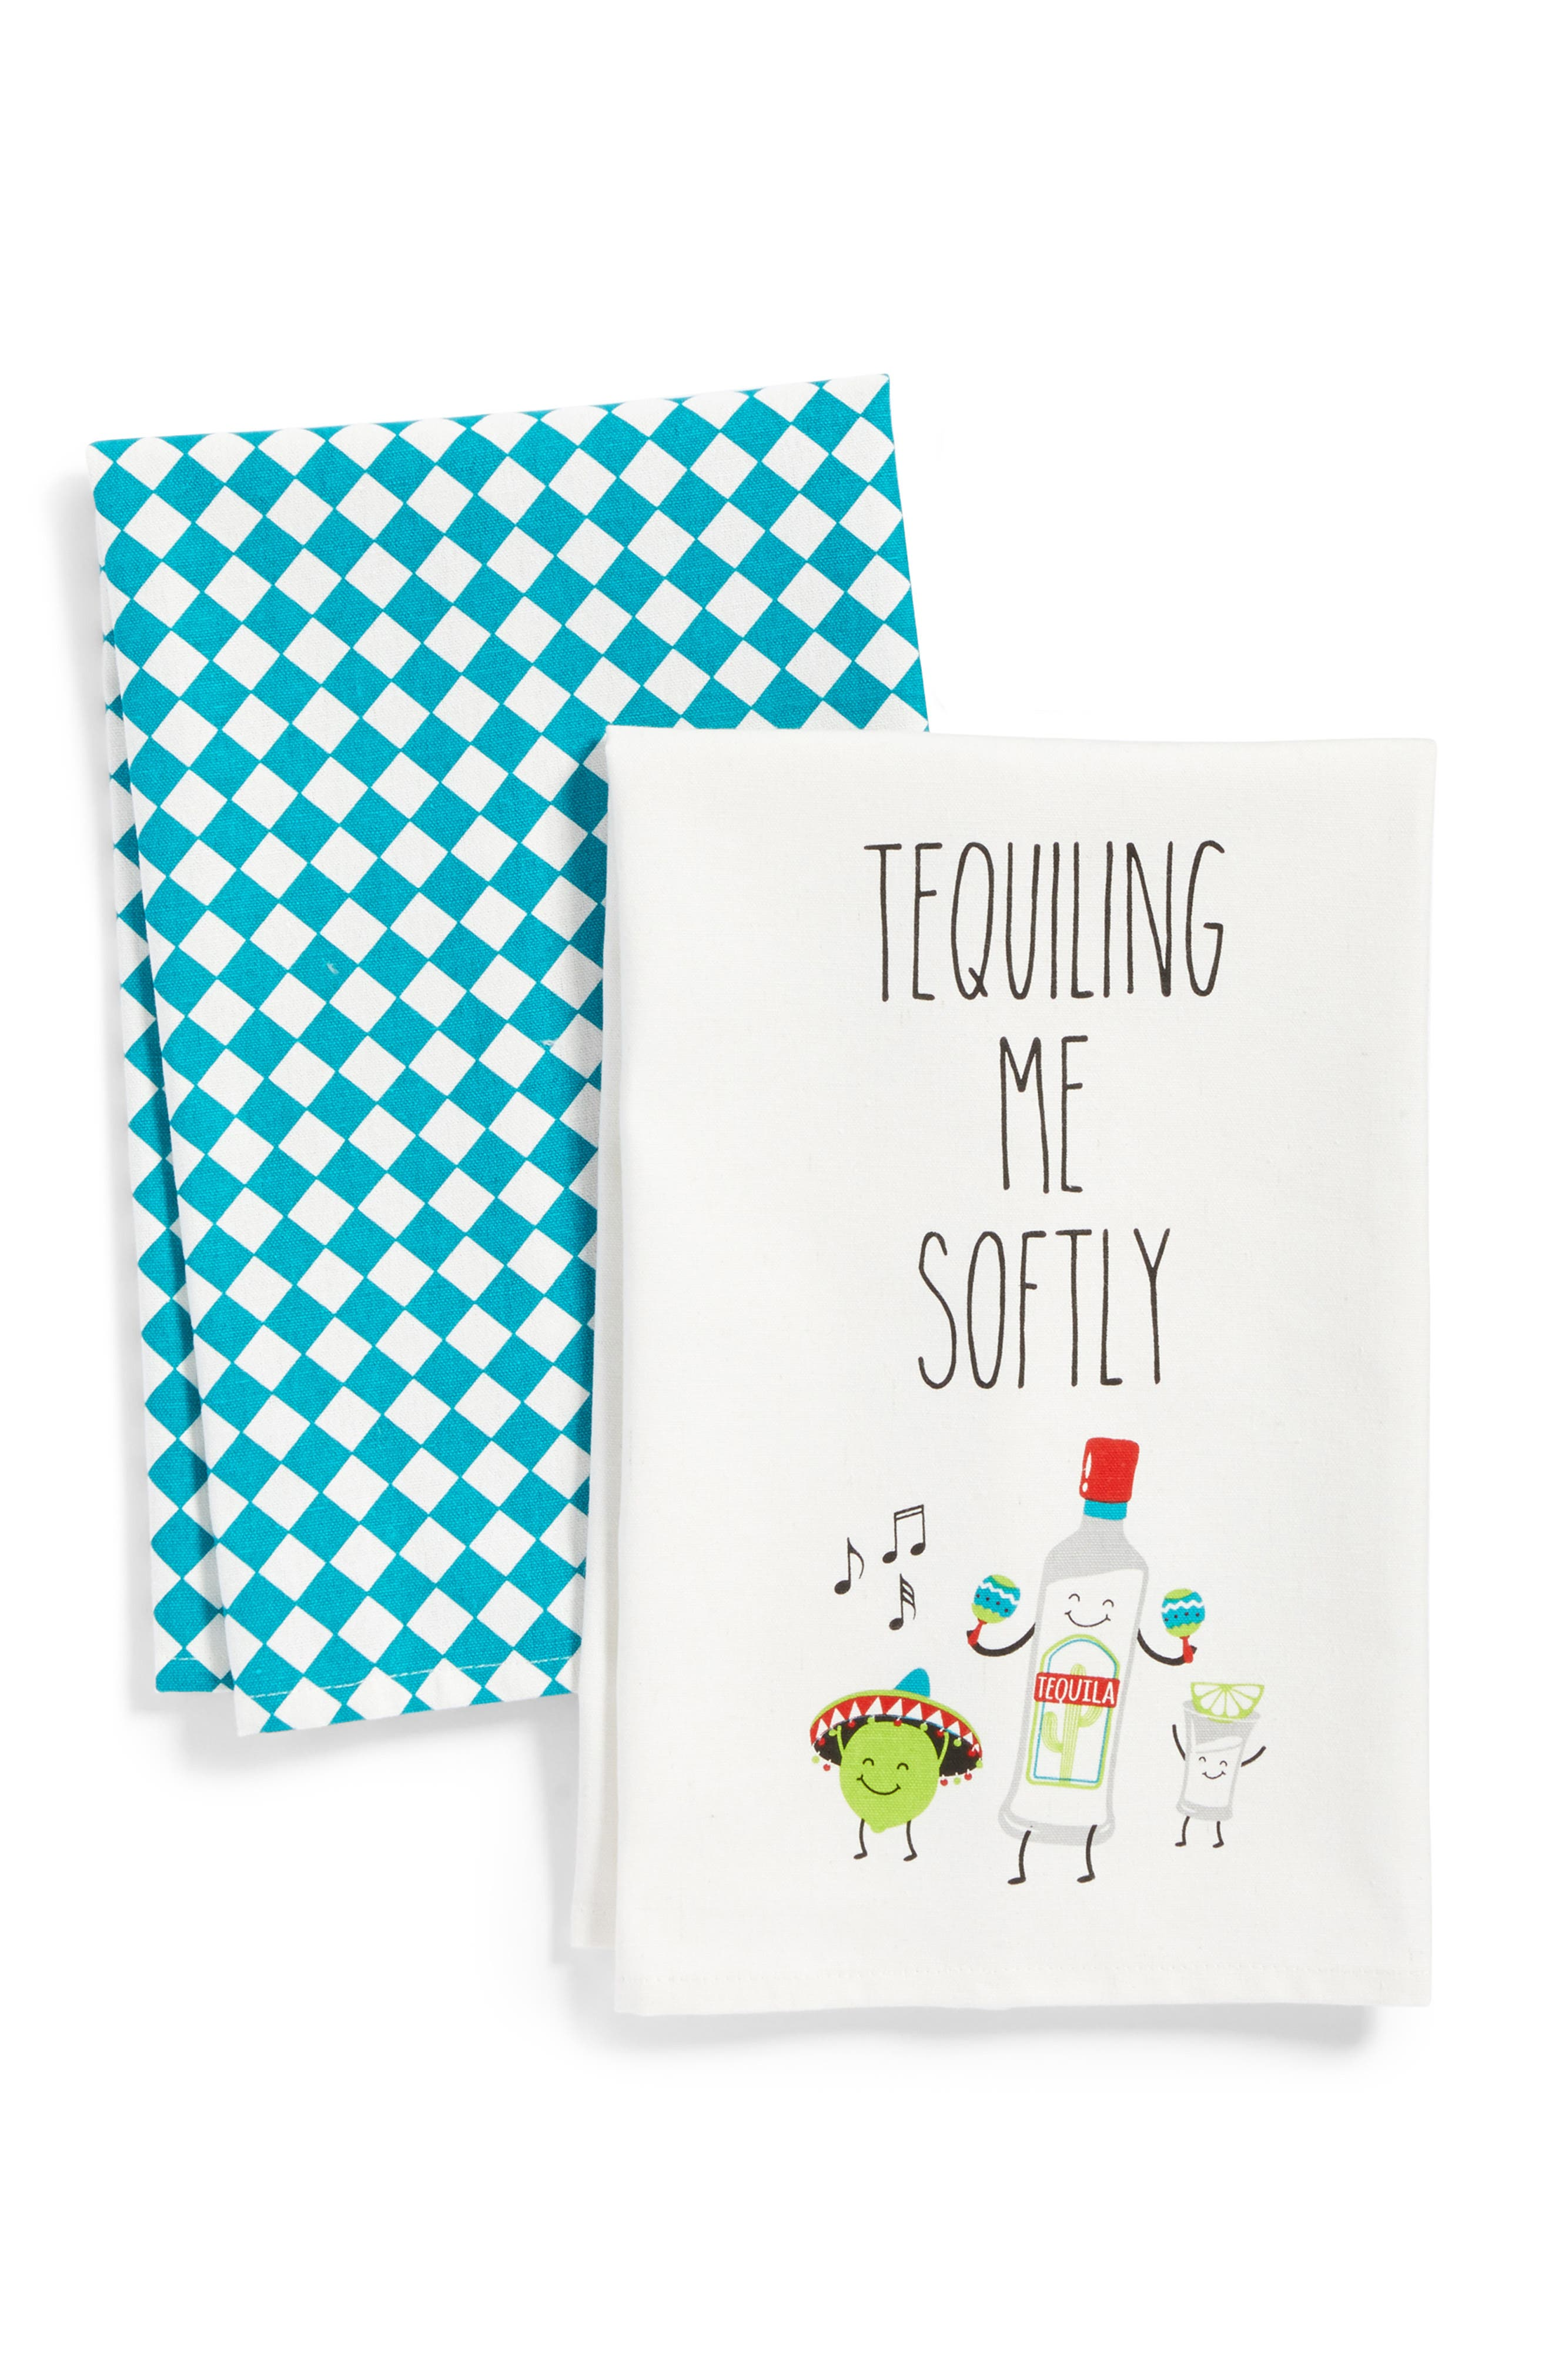 Alternate Image 1 Selected - Levtex Tequiling Me Softly Set of 2 Dishtowels